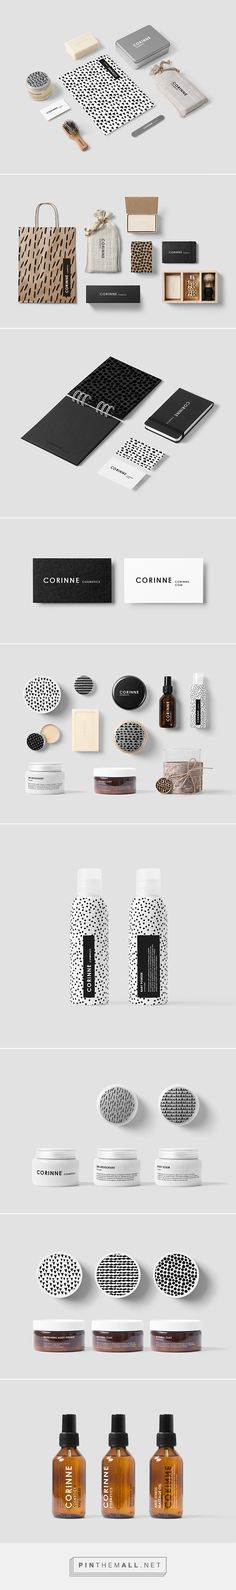 Beautiful branding goes back to nature